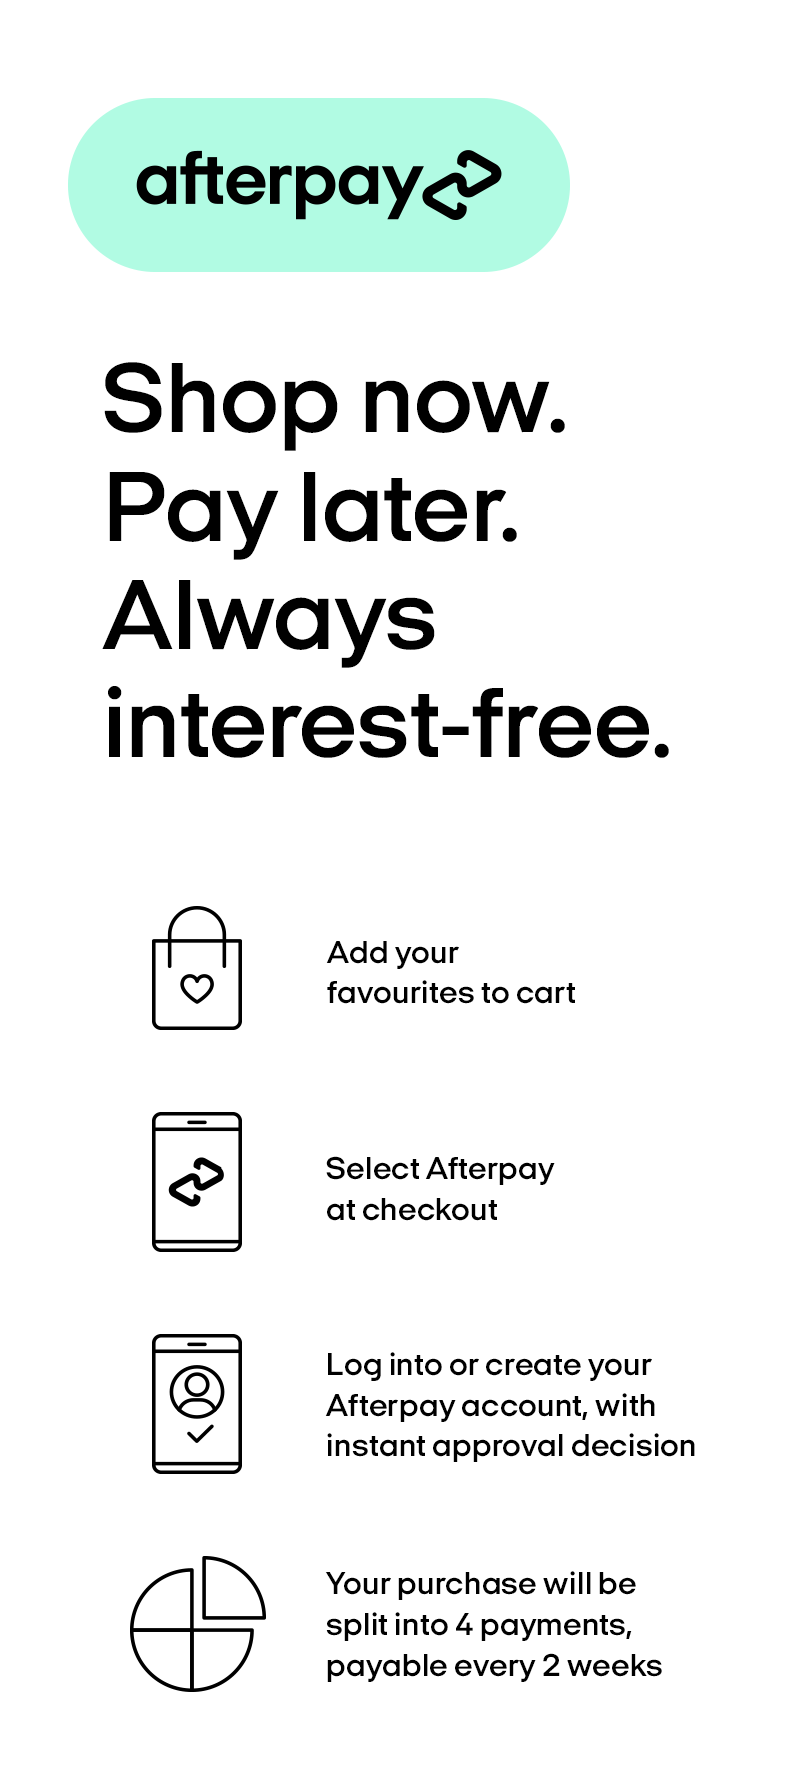 Afterpay. Shop now. Pay later. Always interest-free.